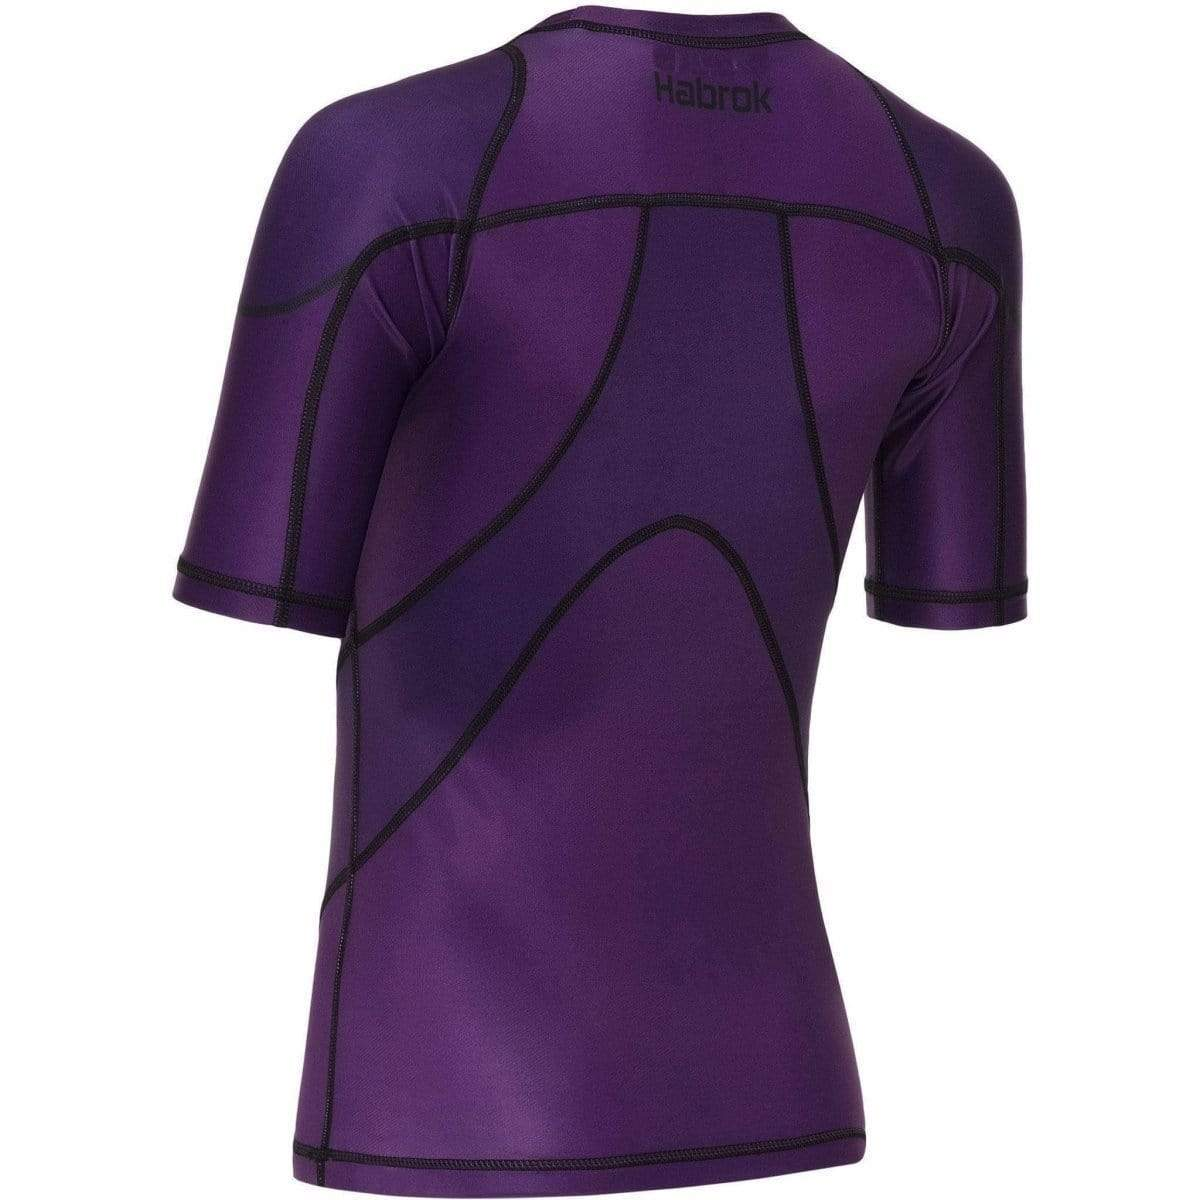 Habrok Rash Guard Pugnator 2.0 | Rash Guard | Women | Half Sleeve | Purple